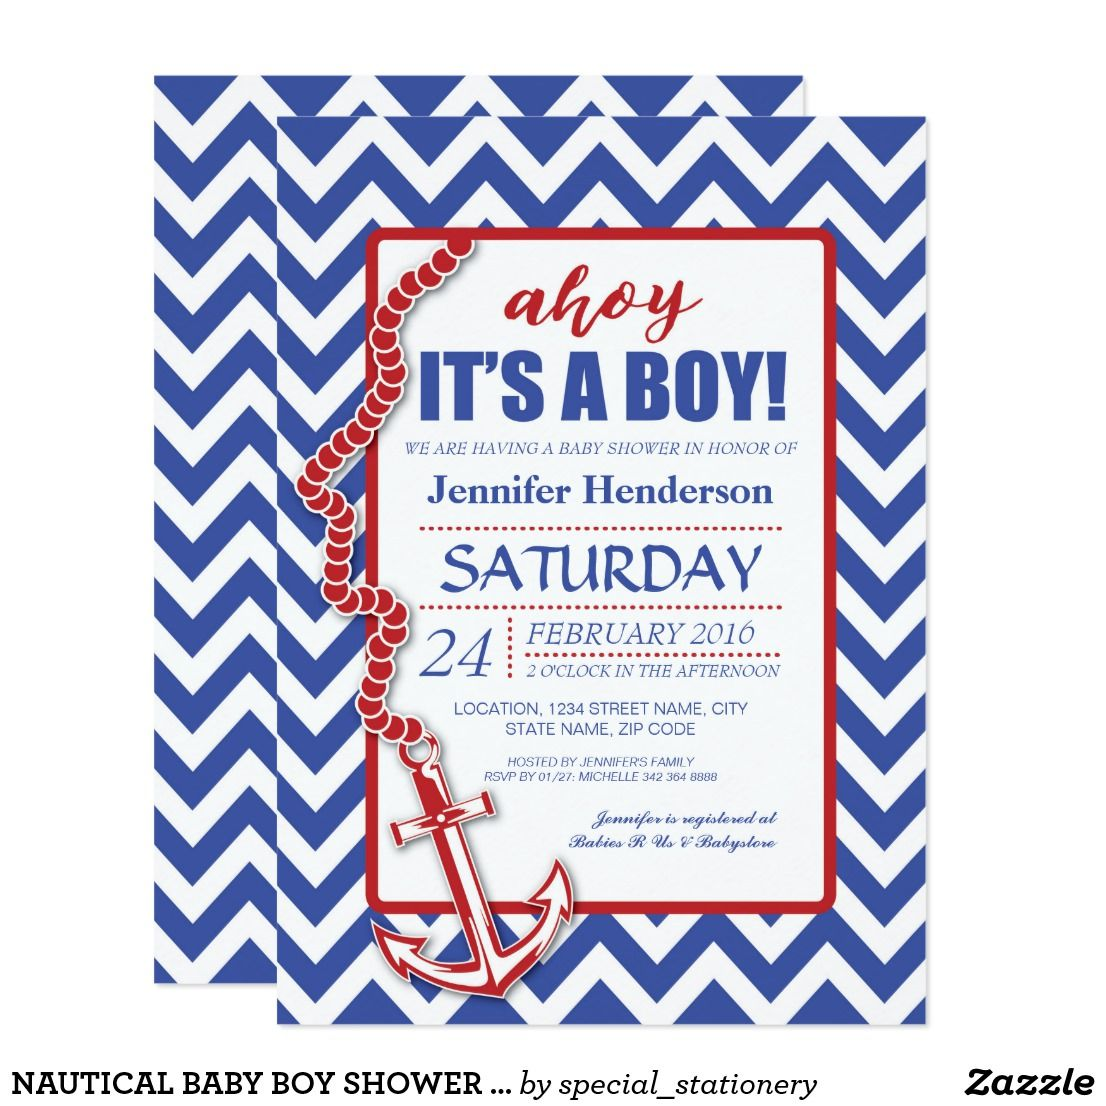 NAUTICAL BABY BOY SHOWER INVITATIONS | NAVY & RED | Invites: Baby ...